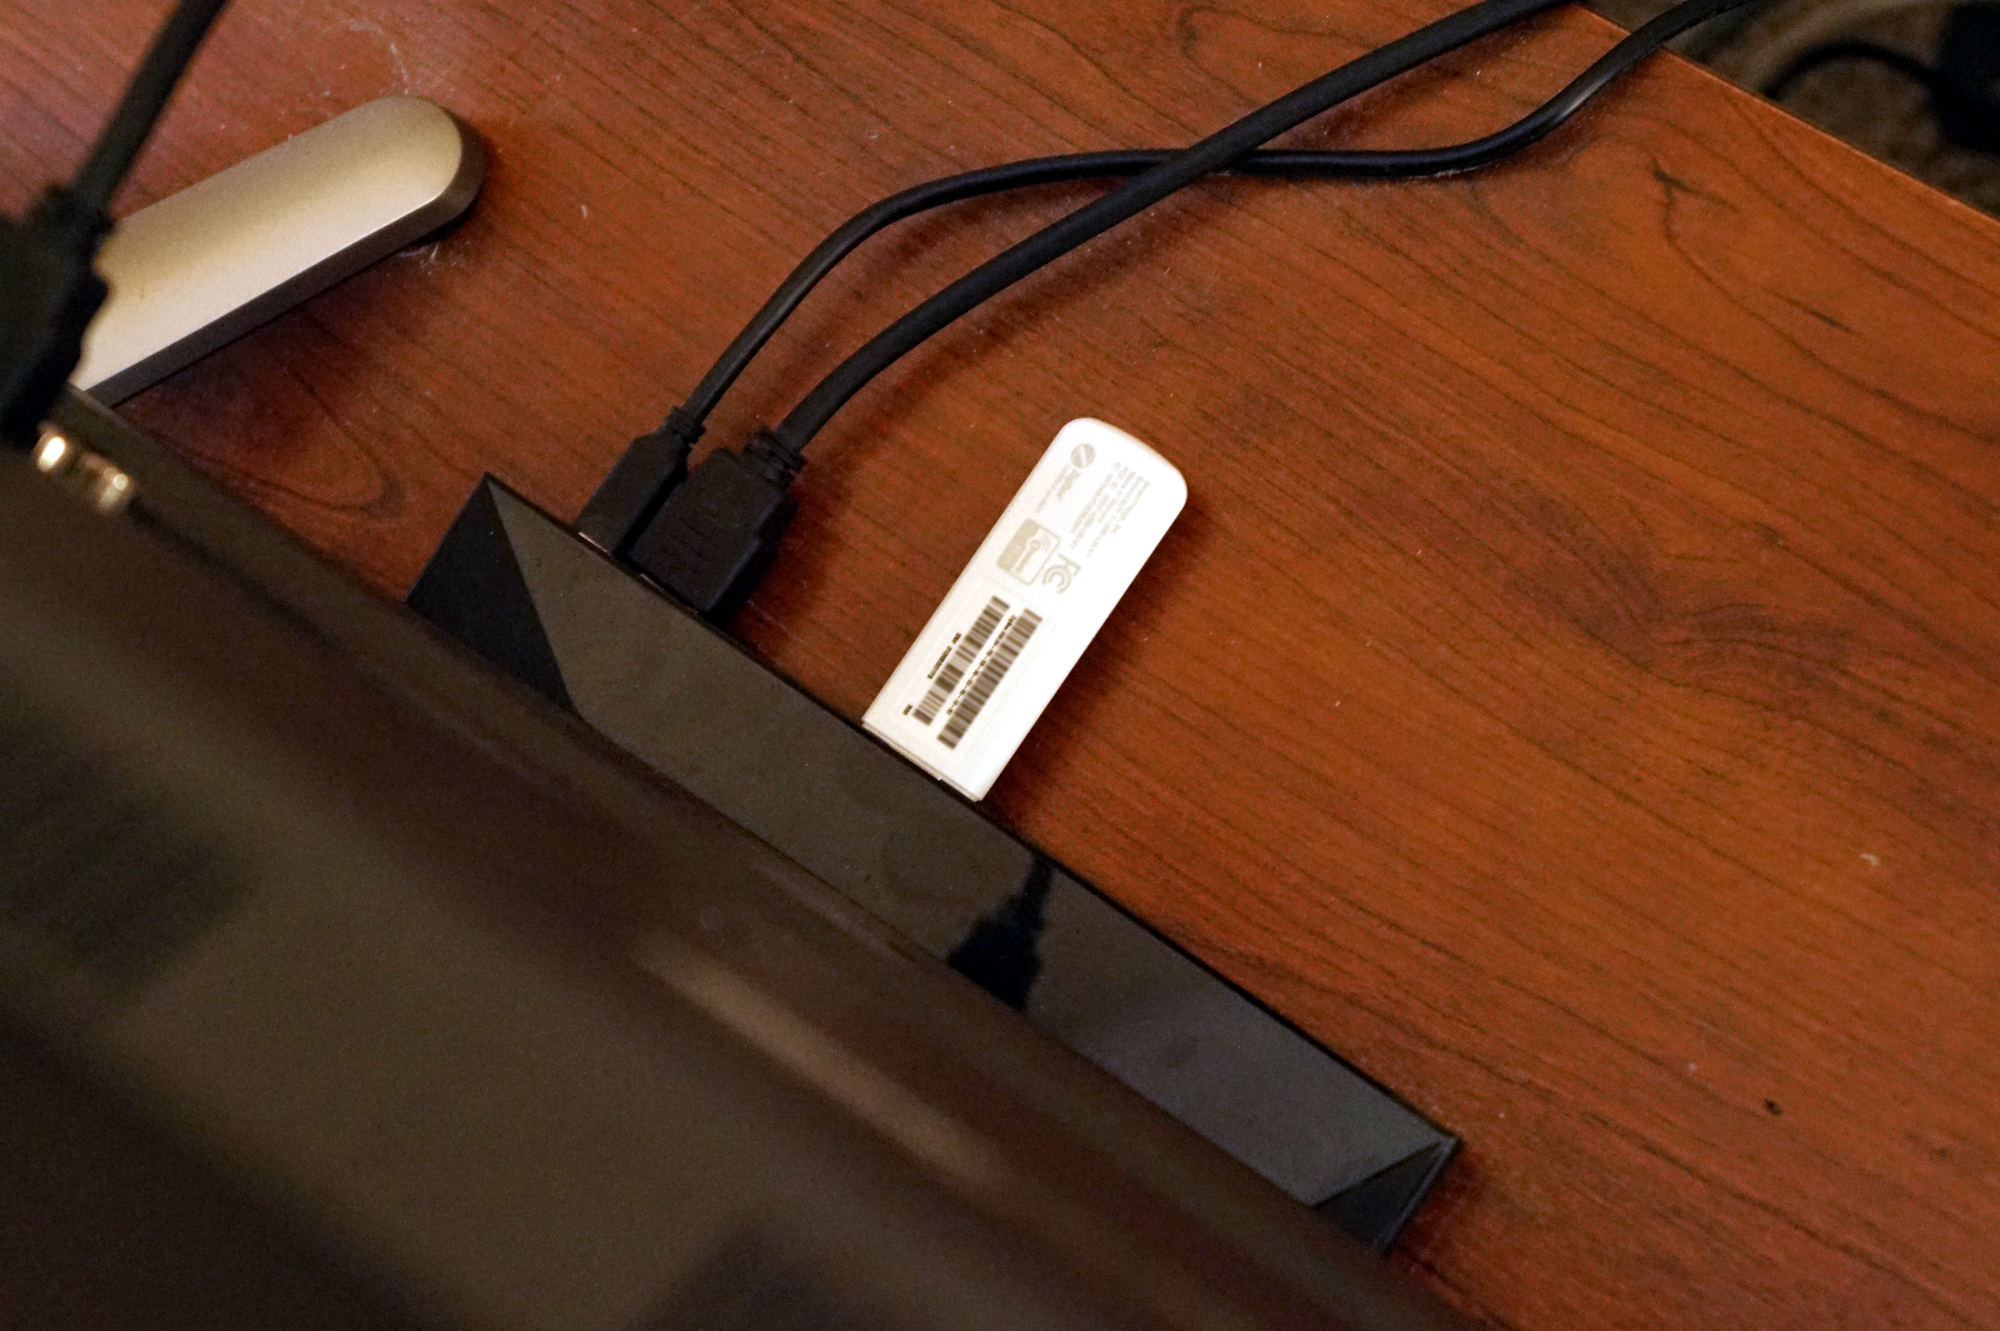 Turning the SHIELD TV into a smart home hub with the SmartThings Link